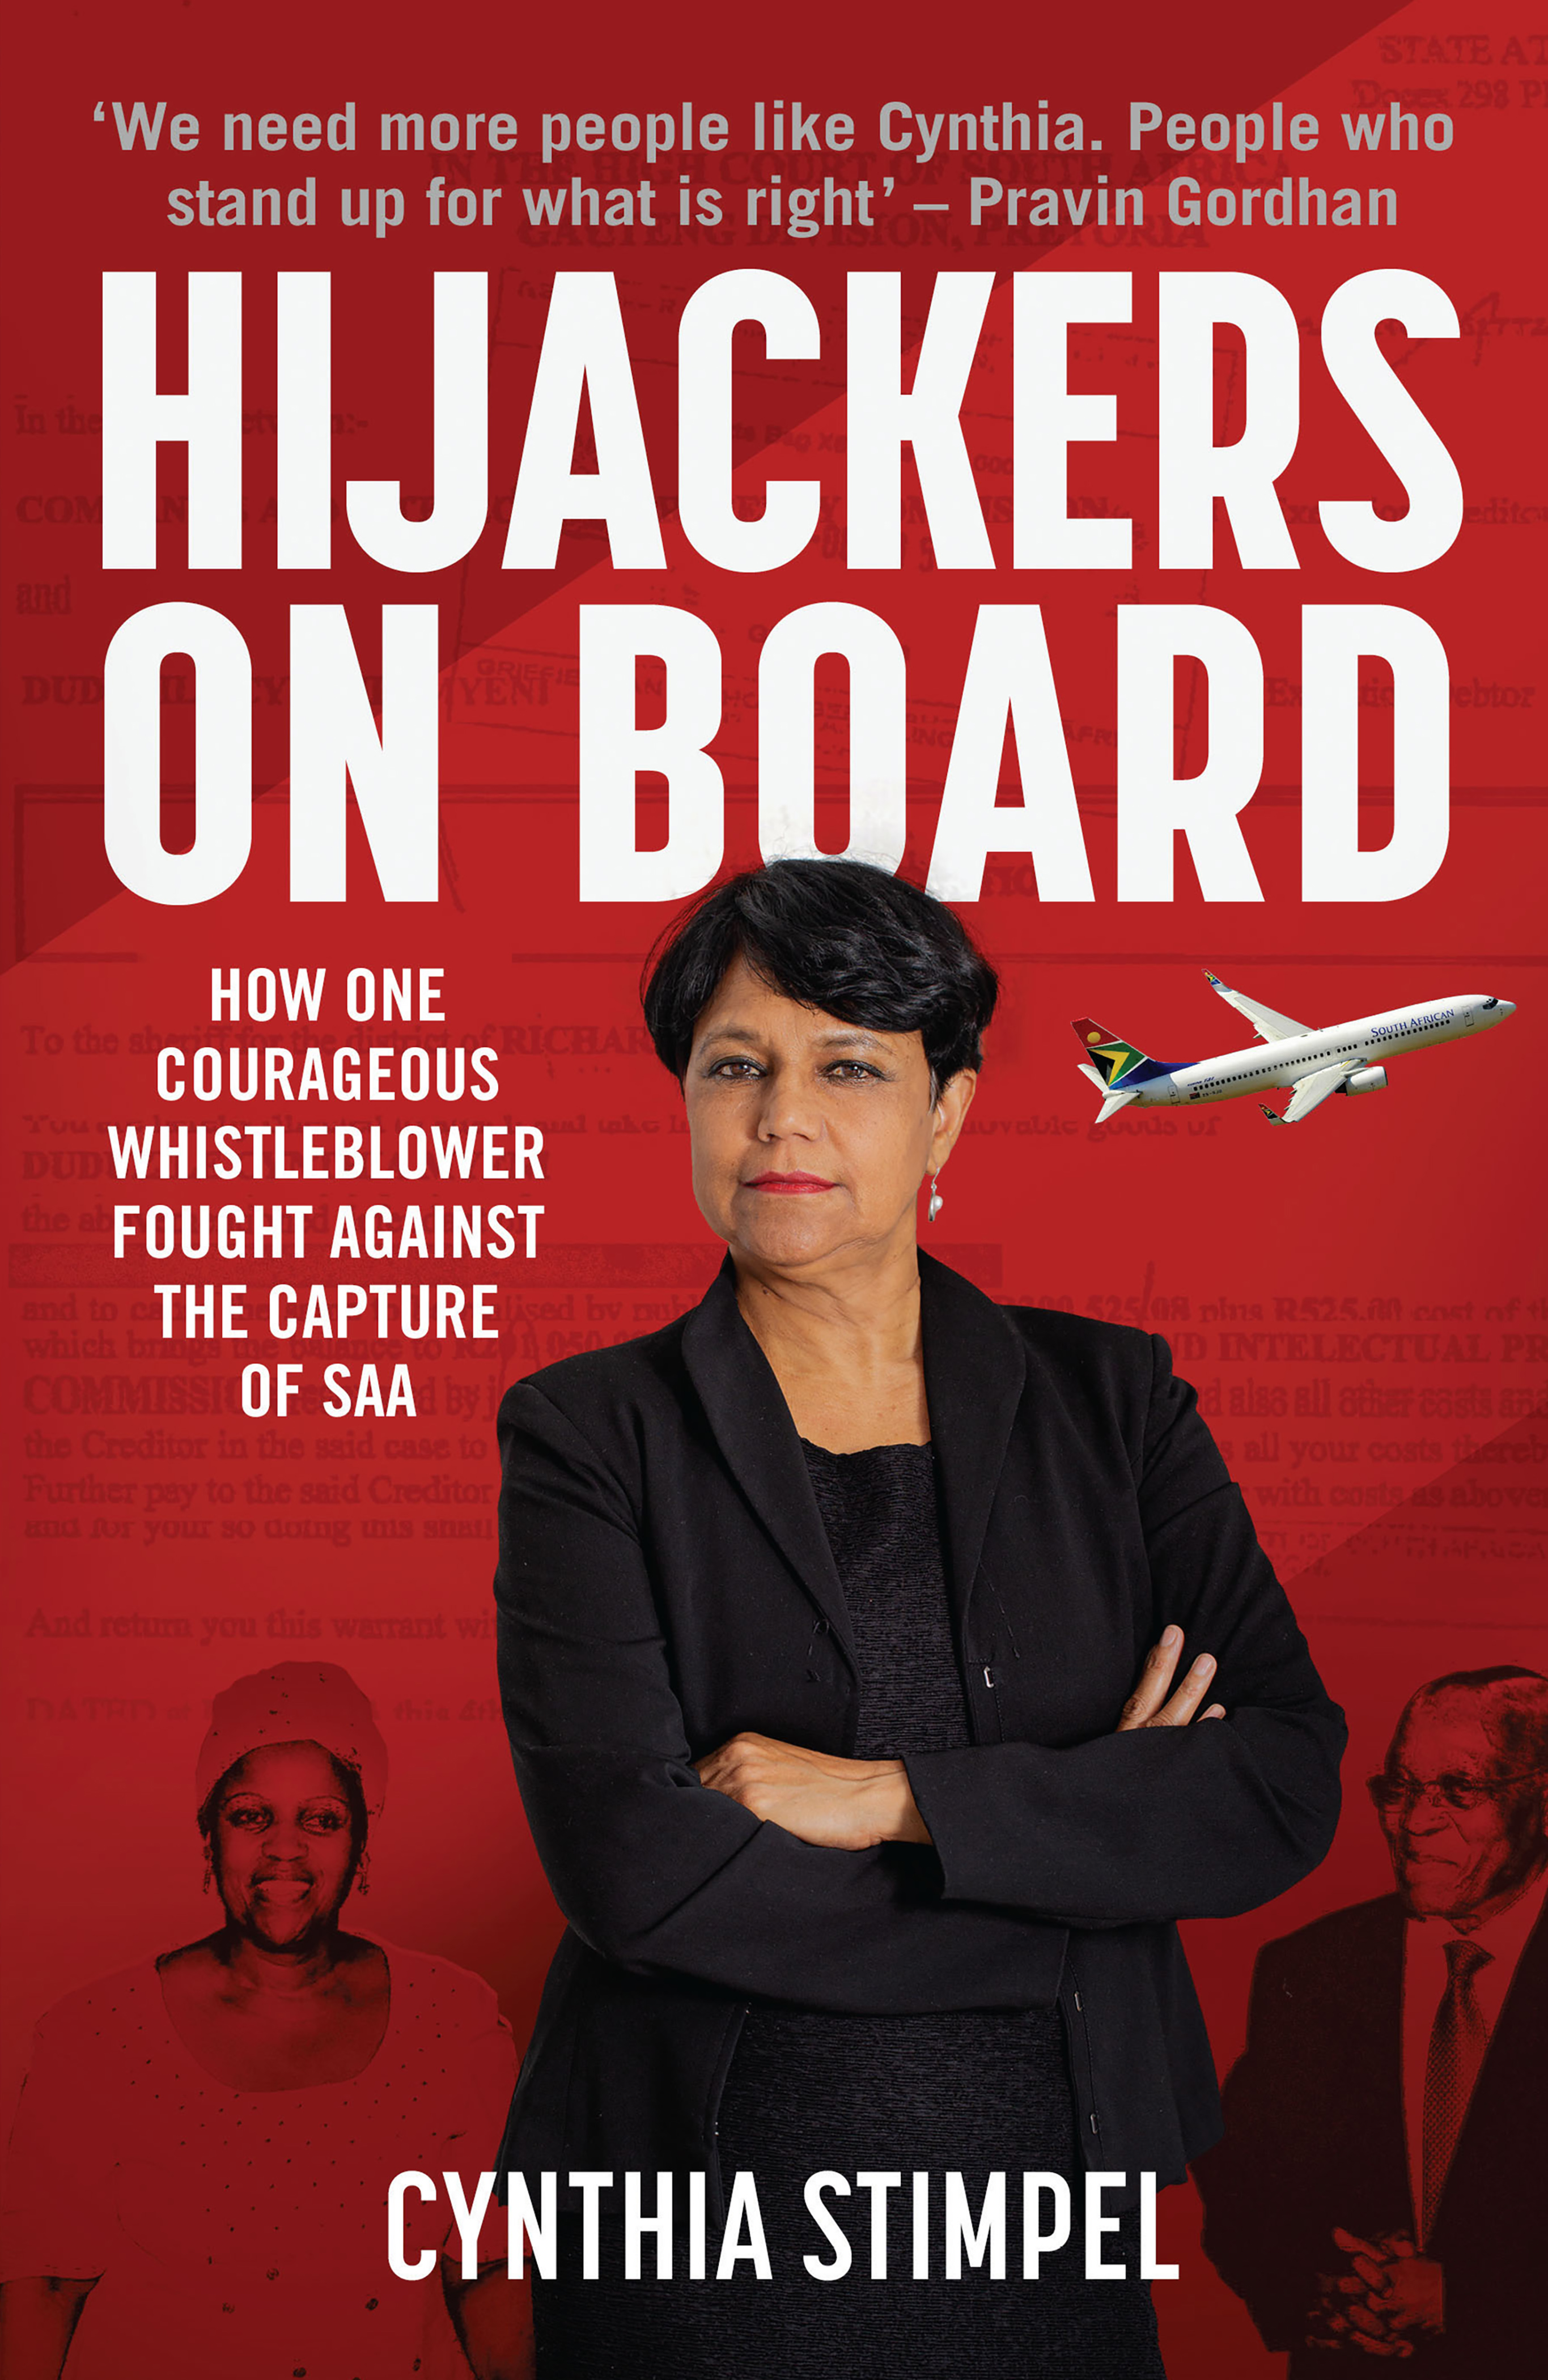 Hijackers On Board : How One Courageous Whistleblower Fought Against the Capture of SAA